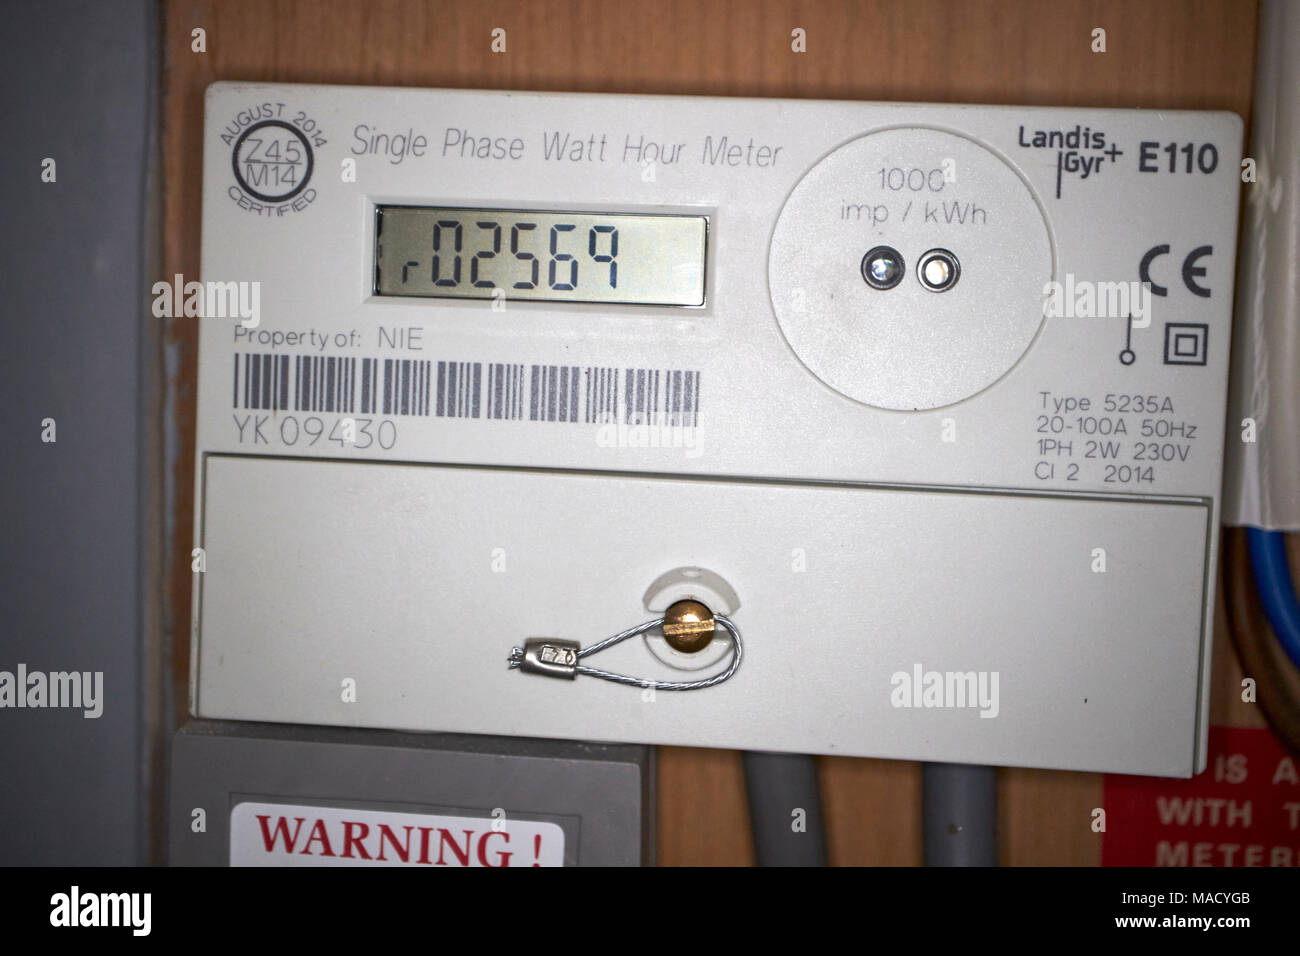 domestic single phase electricity meter with export for solar pv electricity generation meter used for feed in tariff payments - Stock Image